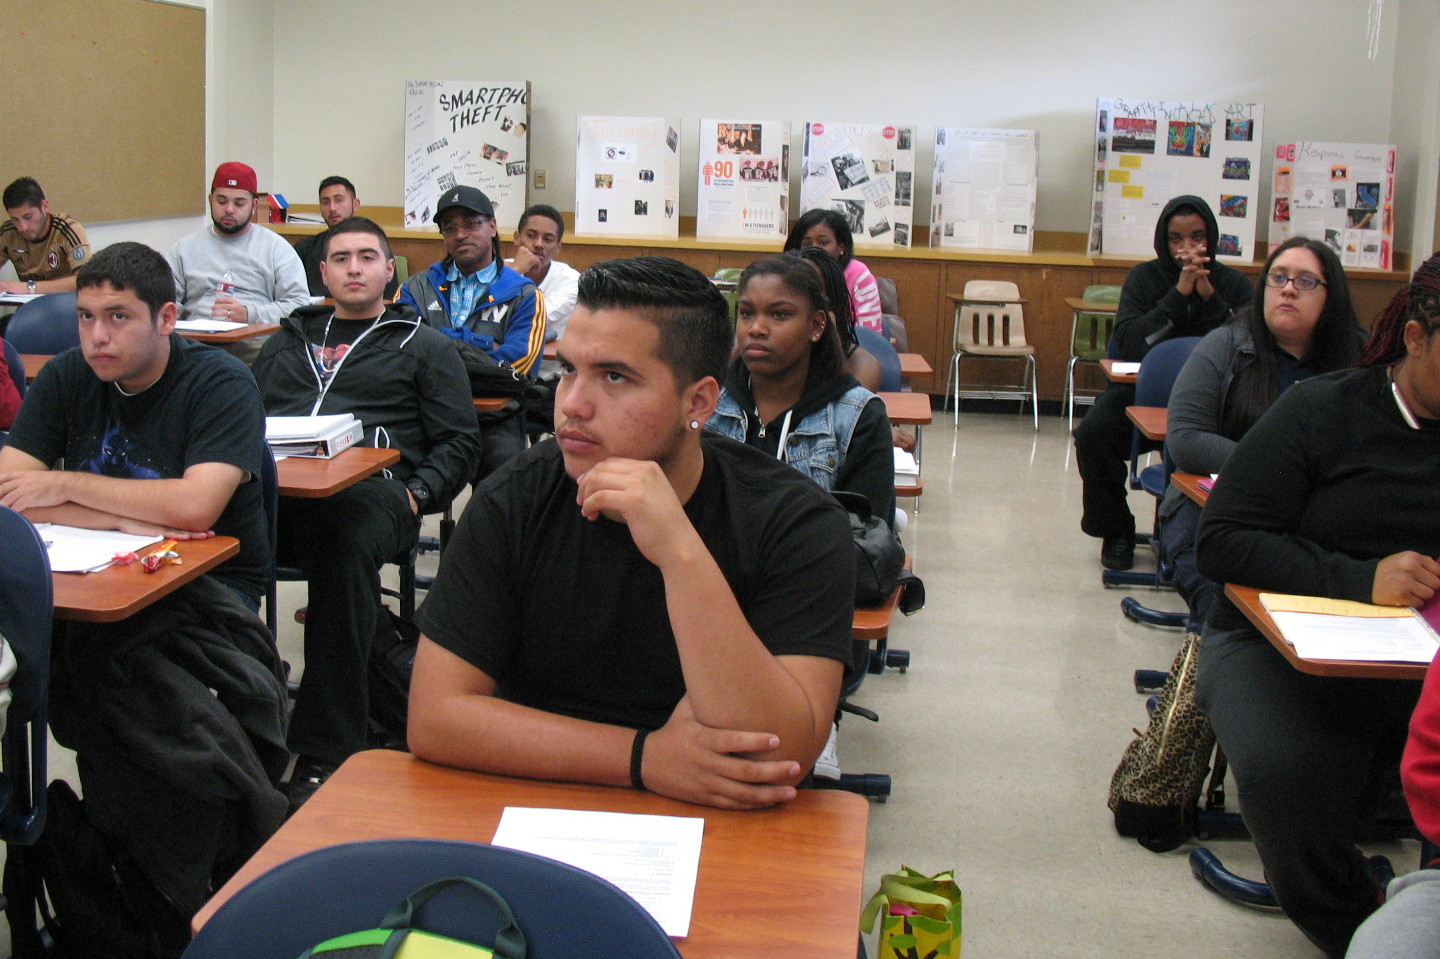 Manuel Rodriguez listens during a class in policing and community relations at Merritt College on Jan. 28, 2015.